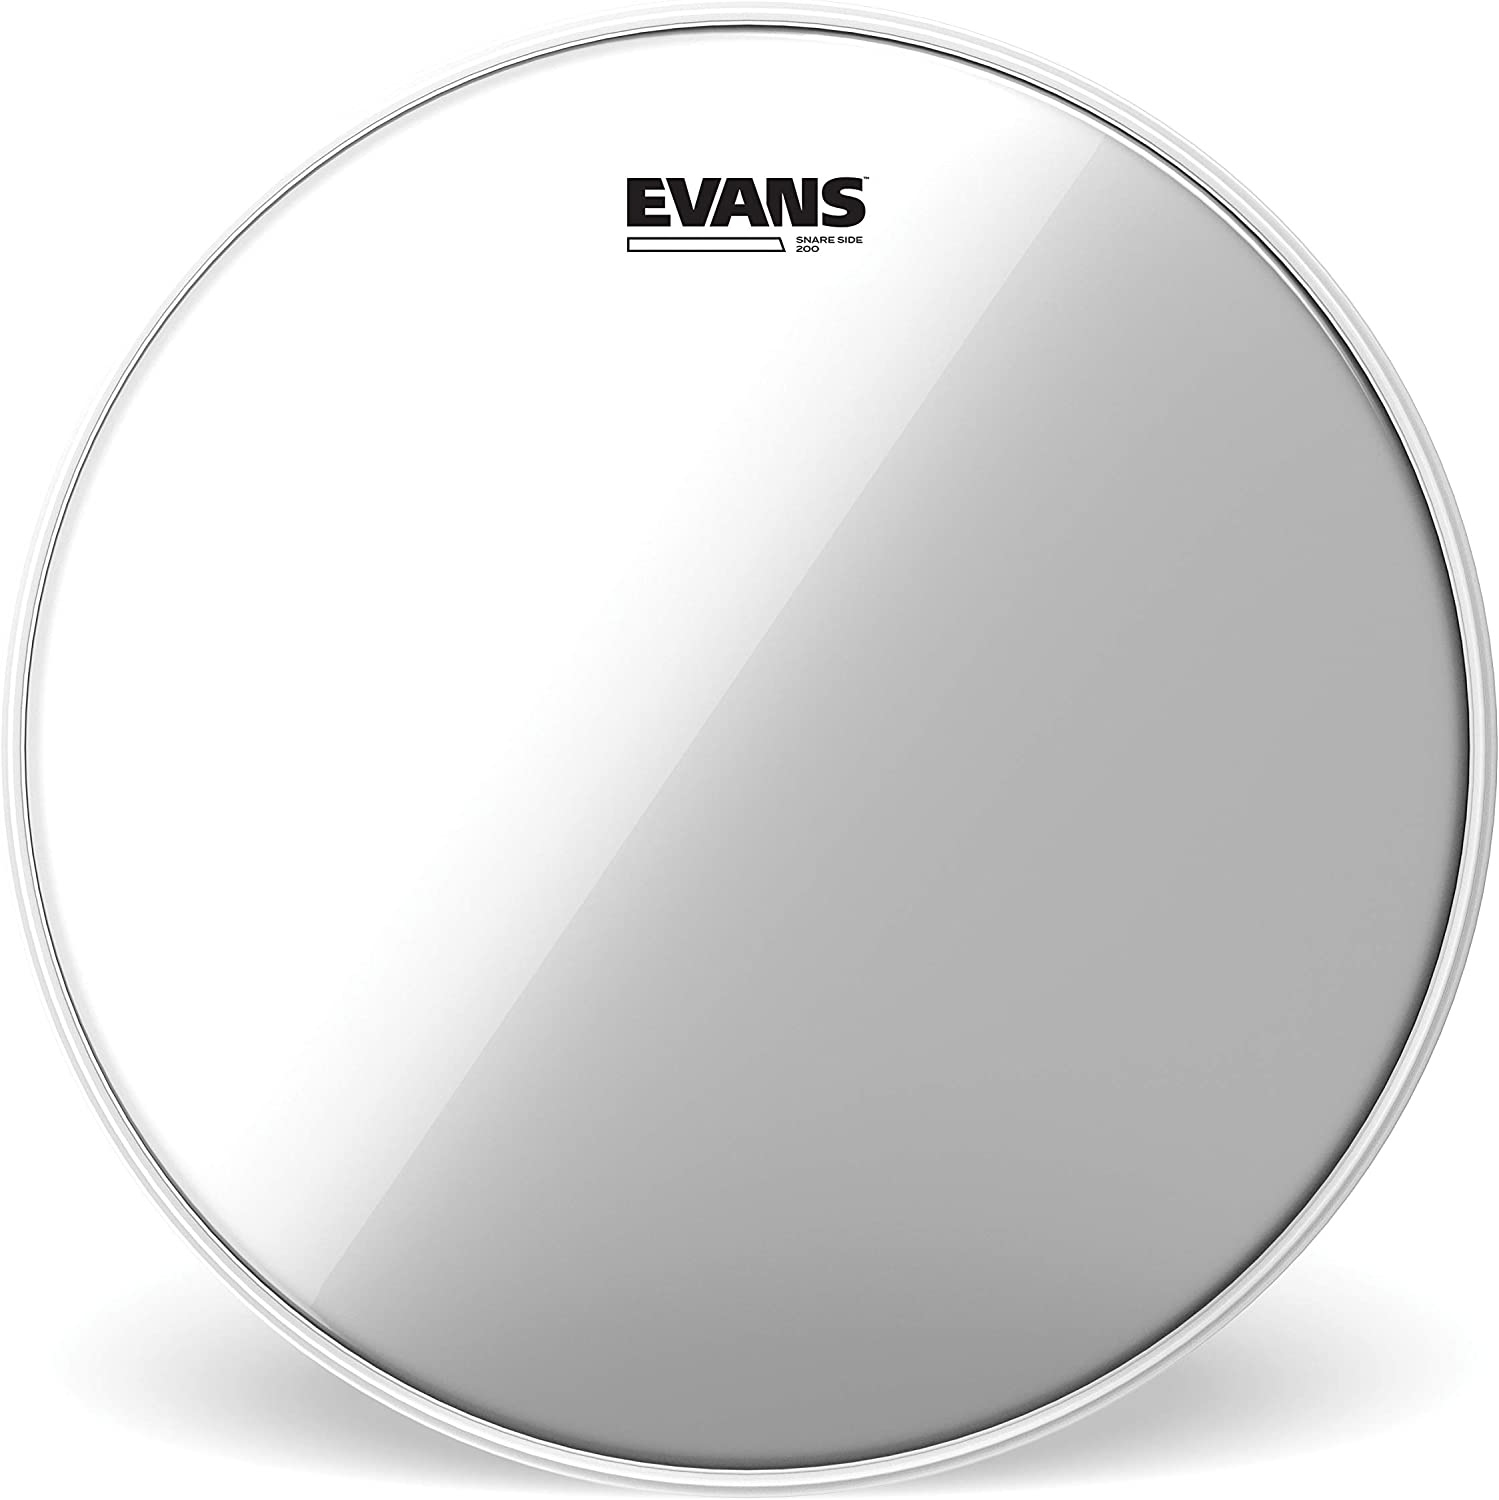 Evans Clear 200 Snare Side Drum Head, 14 Inch 71xy9WFJzvL